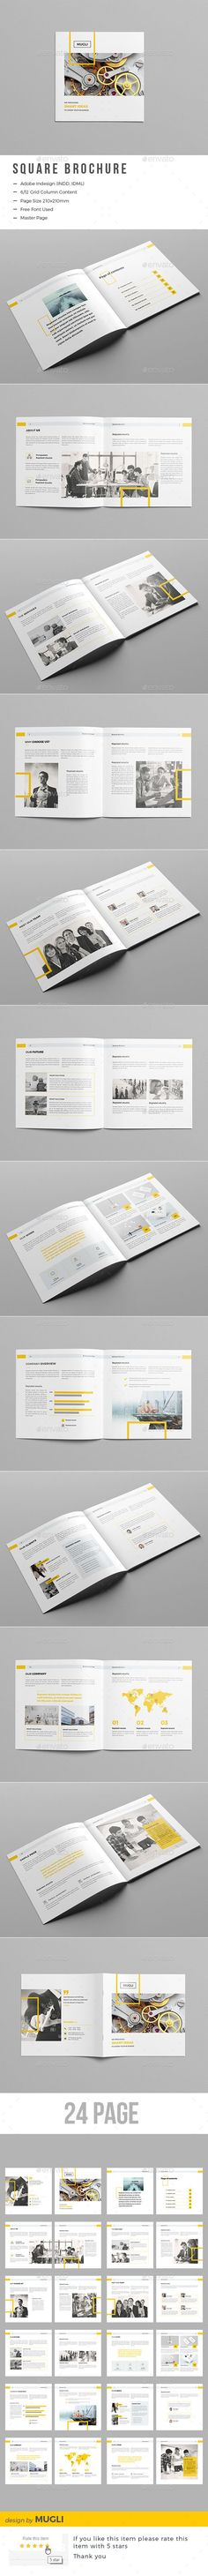 The Square Brochure  — InDesign Template #manual #marketing • Download ➝ https://graphicriver.net/item/the-square-brochure/17960716?ref=pxcr